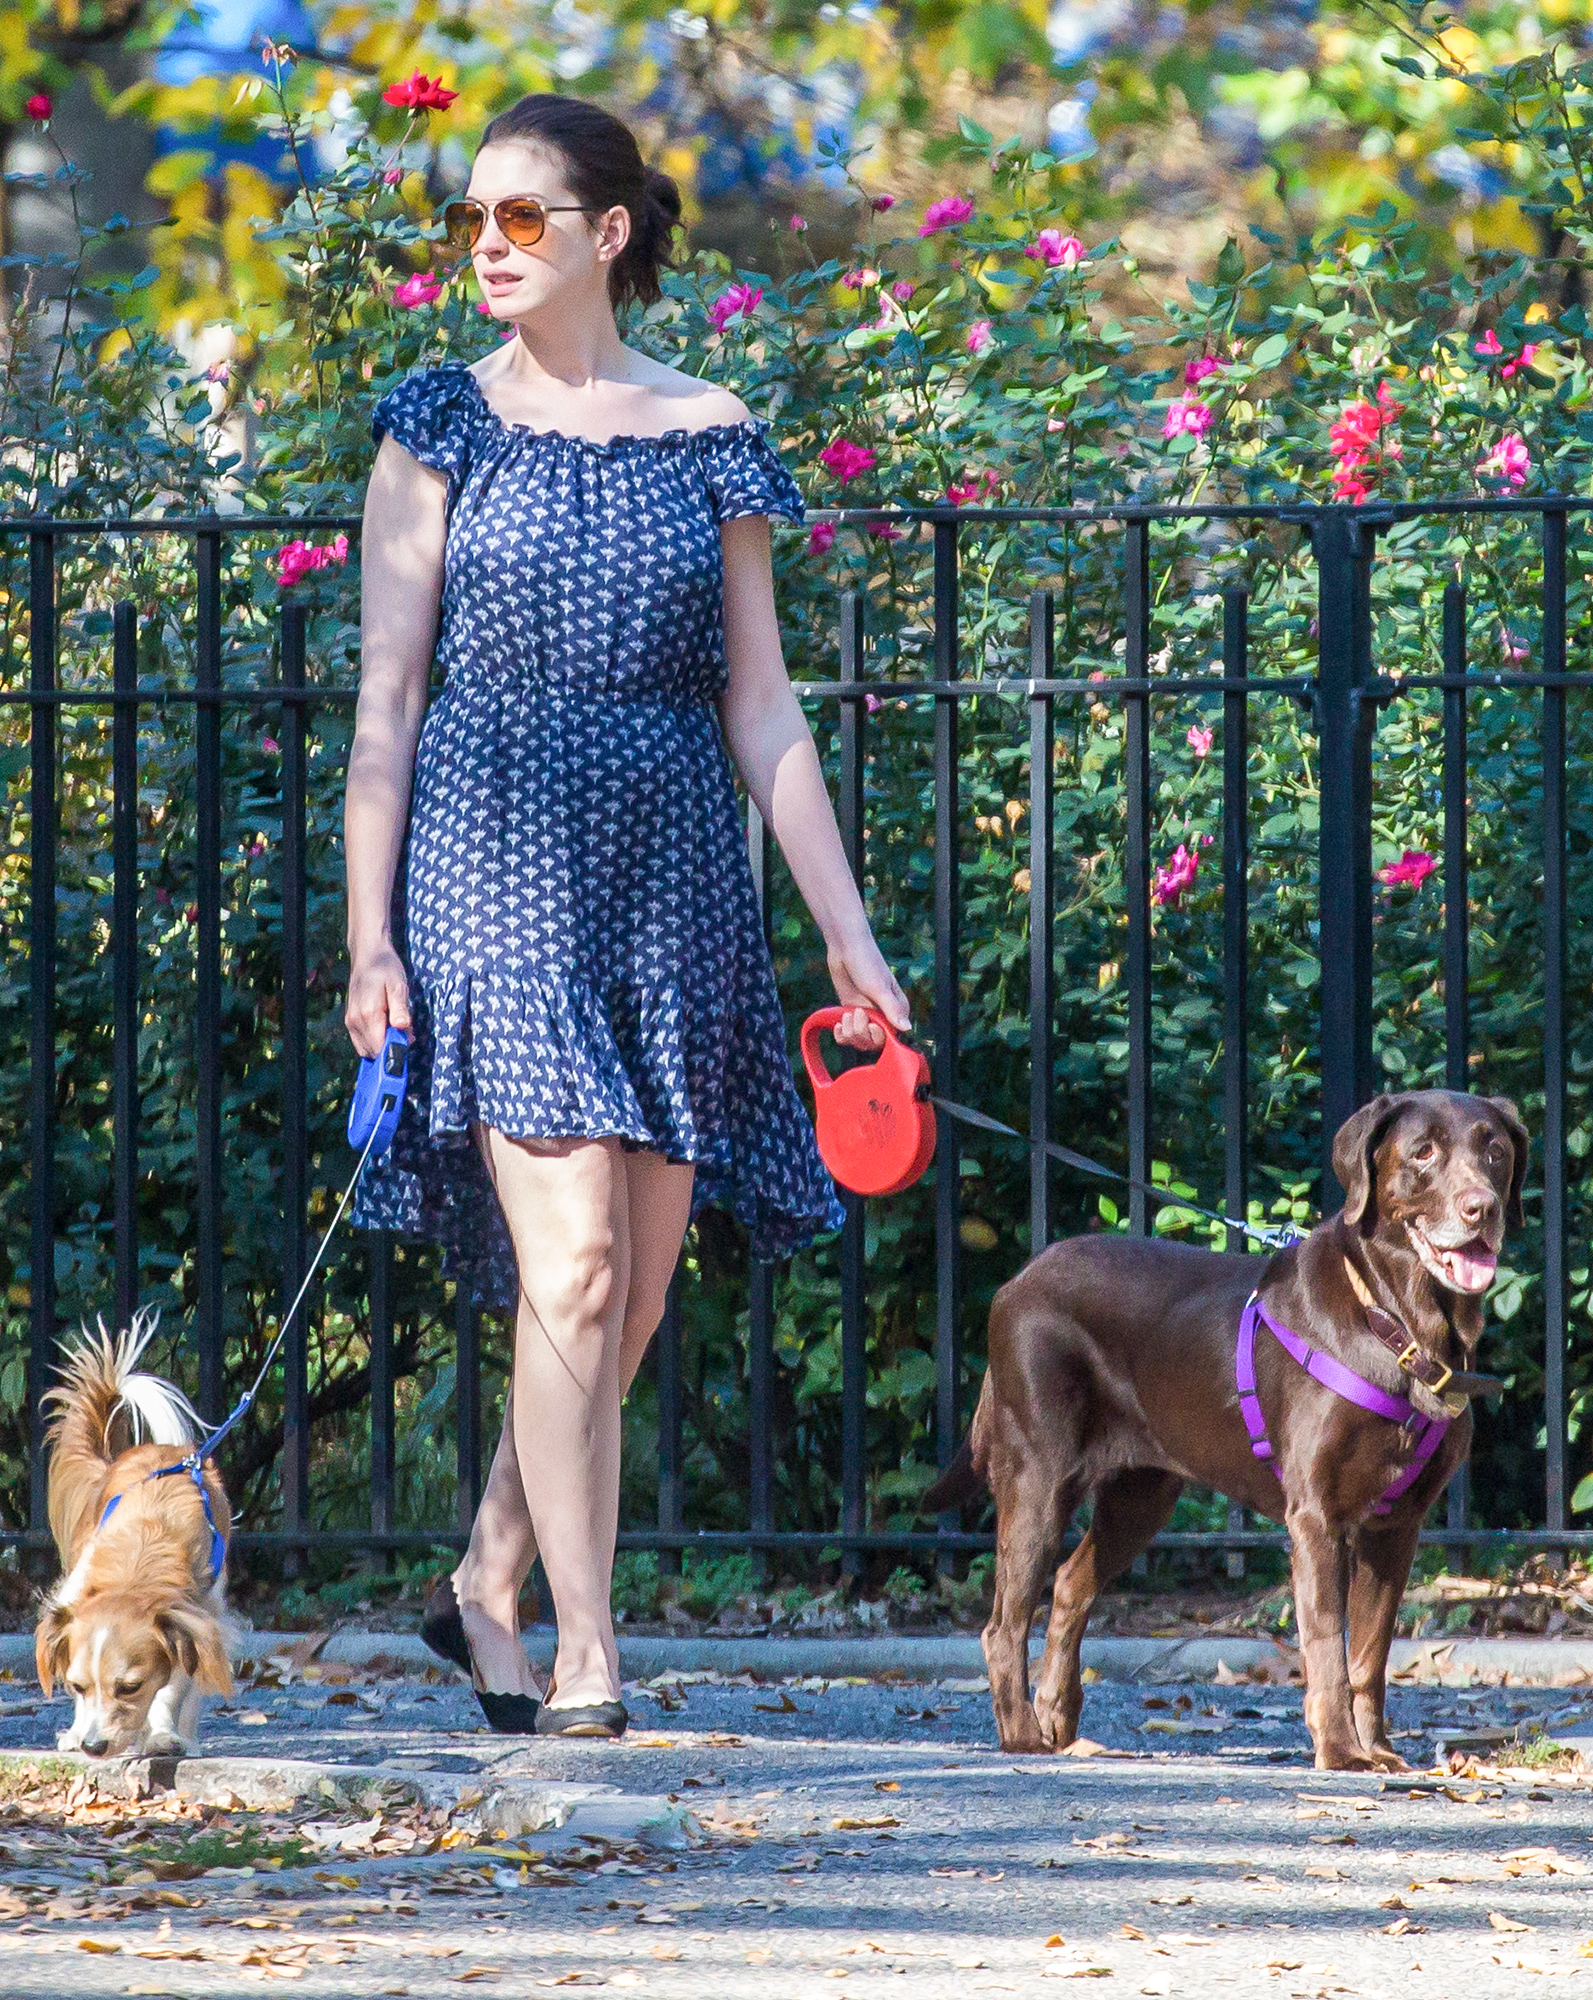 EXCLUSIVE: Anne Hathaway seen walking her dogs at a New York City park